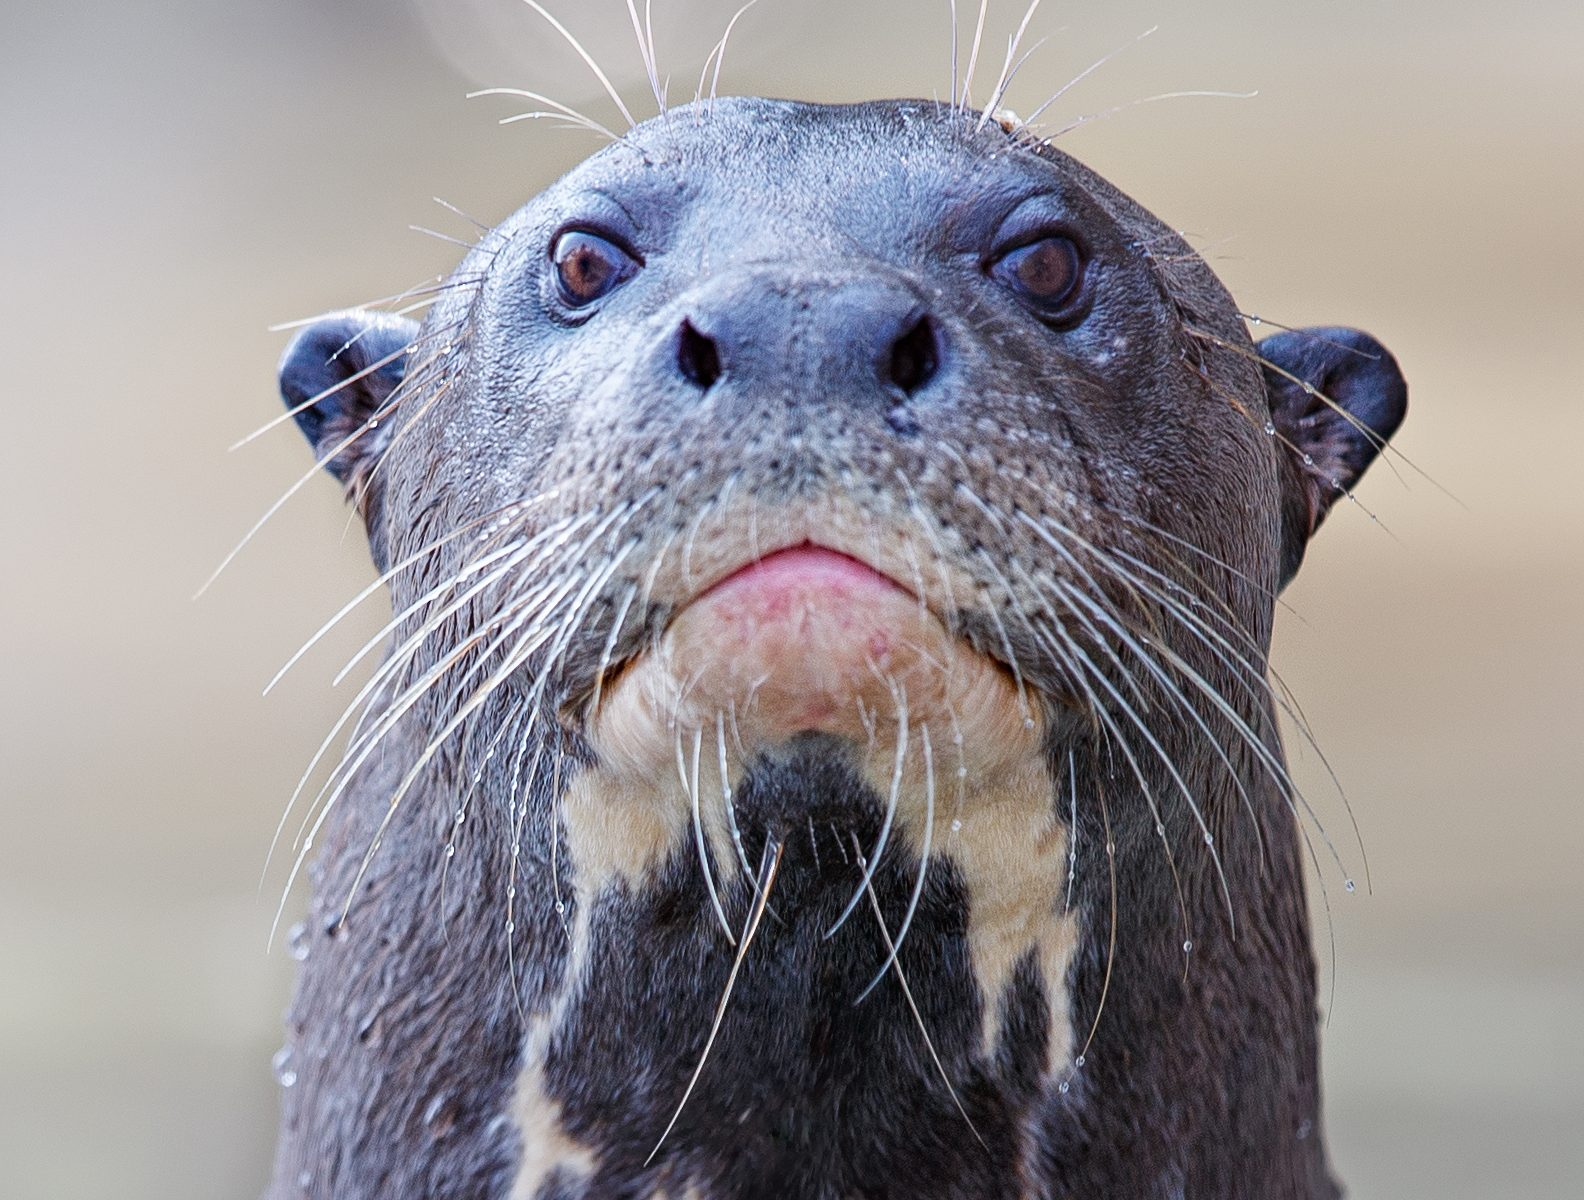 giant otter giant river otter giant otter size amazon river otter south american otter giant sea otter giant river otter size giant otter facts amazon otters largest otter pteronura siamogale melilutra south american river otter giant otter habitat giant amazon otter the giant otter brazilian otter large otter giant river giant otter population giant otter diet giant otter amazon rainforest giant otter lifespan giant river otter facts amazon giant river otter giant otter predators huge otter giant otter endangered giant 6ft otters sea otters are known to affect the development of giant kelp forests by giant brazilian otter giant otter length giant otter conservation status world's largest otter the giant river otter chester zoo giant otters giant otters chester zoo giant 6 foot otters giant prehistoric otter giant river otter diet giant river otter weight giant otter prey giant river otter habitat giant sea otter size largest river otter 6 foot river otter river otter giant giant river otter amazon rainforest river wolves otter south american giant river otter giant otter extinction